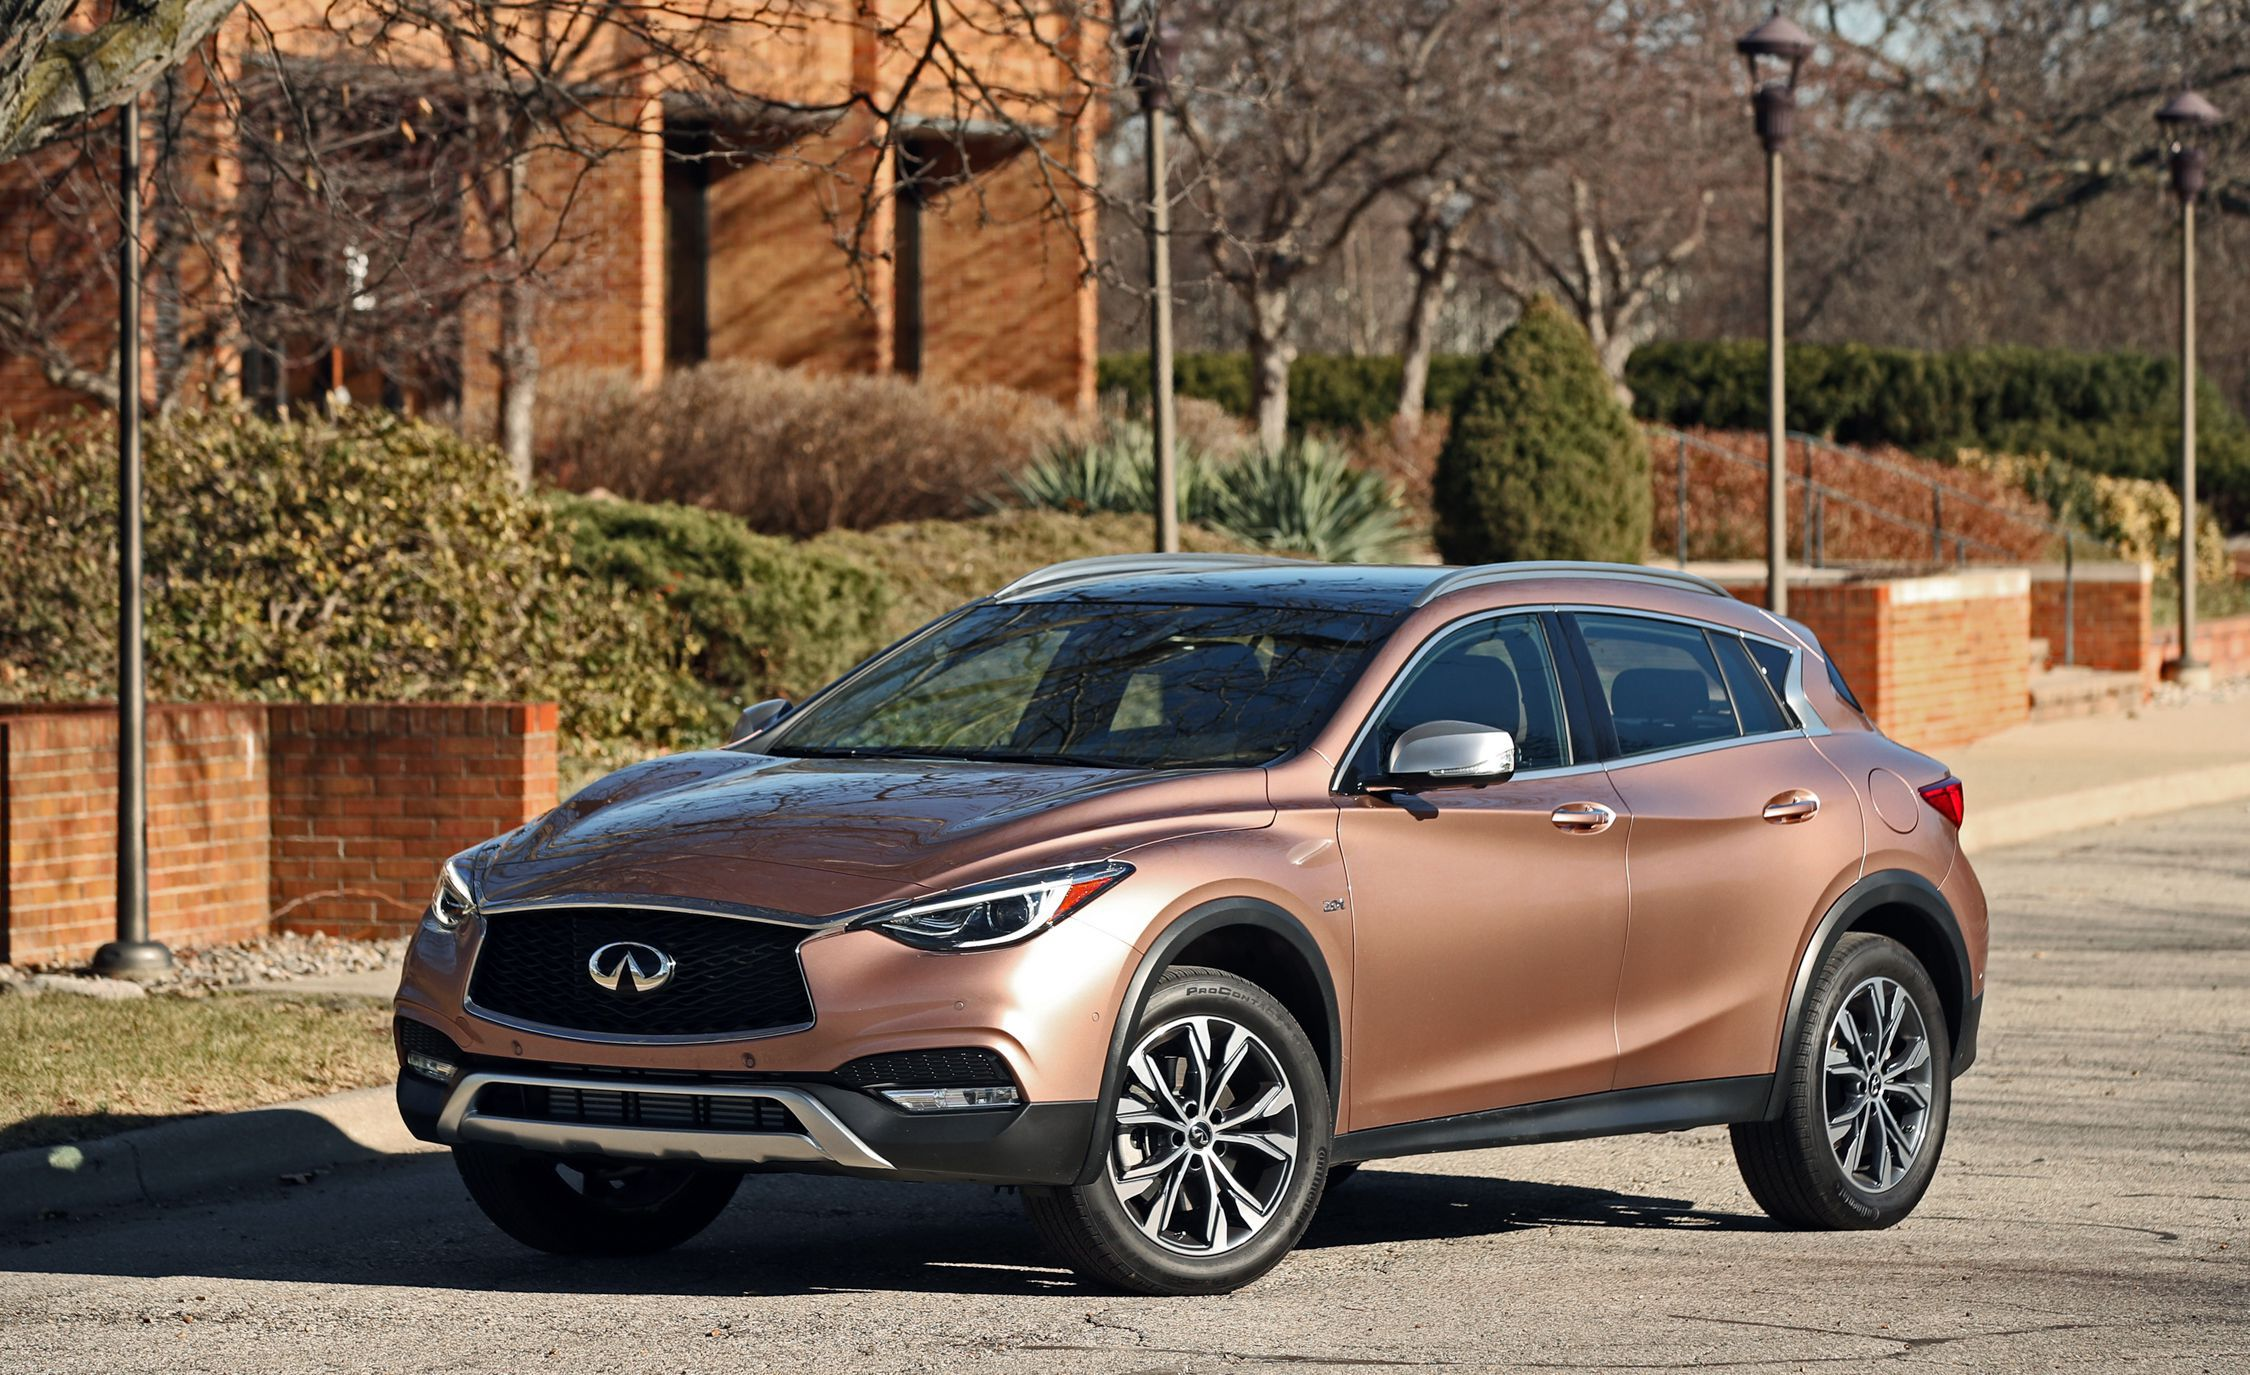 2020 Infiniti QX30 Becomes Electric Crossover SUV >> Comments On The Infiniti Qx30 Gets The Ax As Nissan S